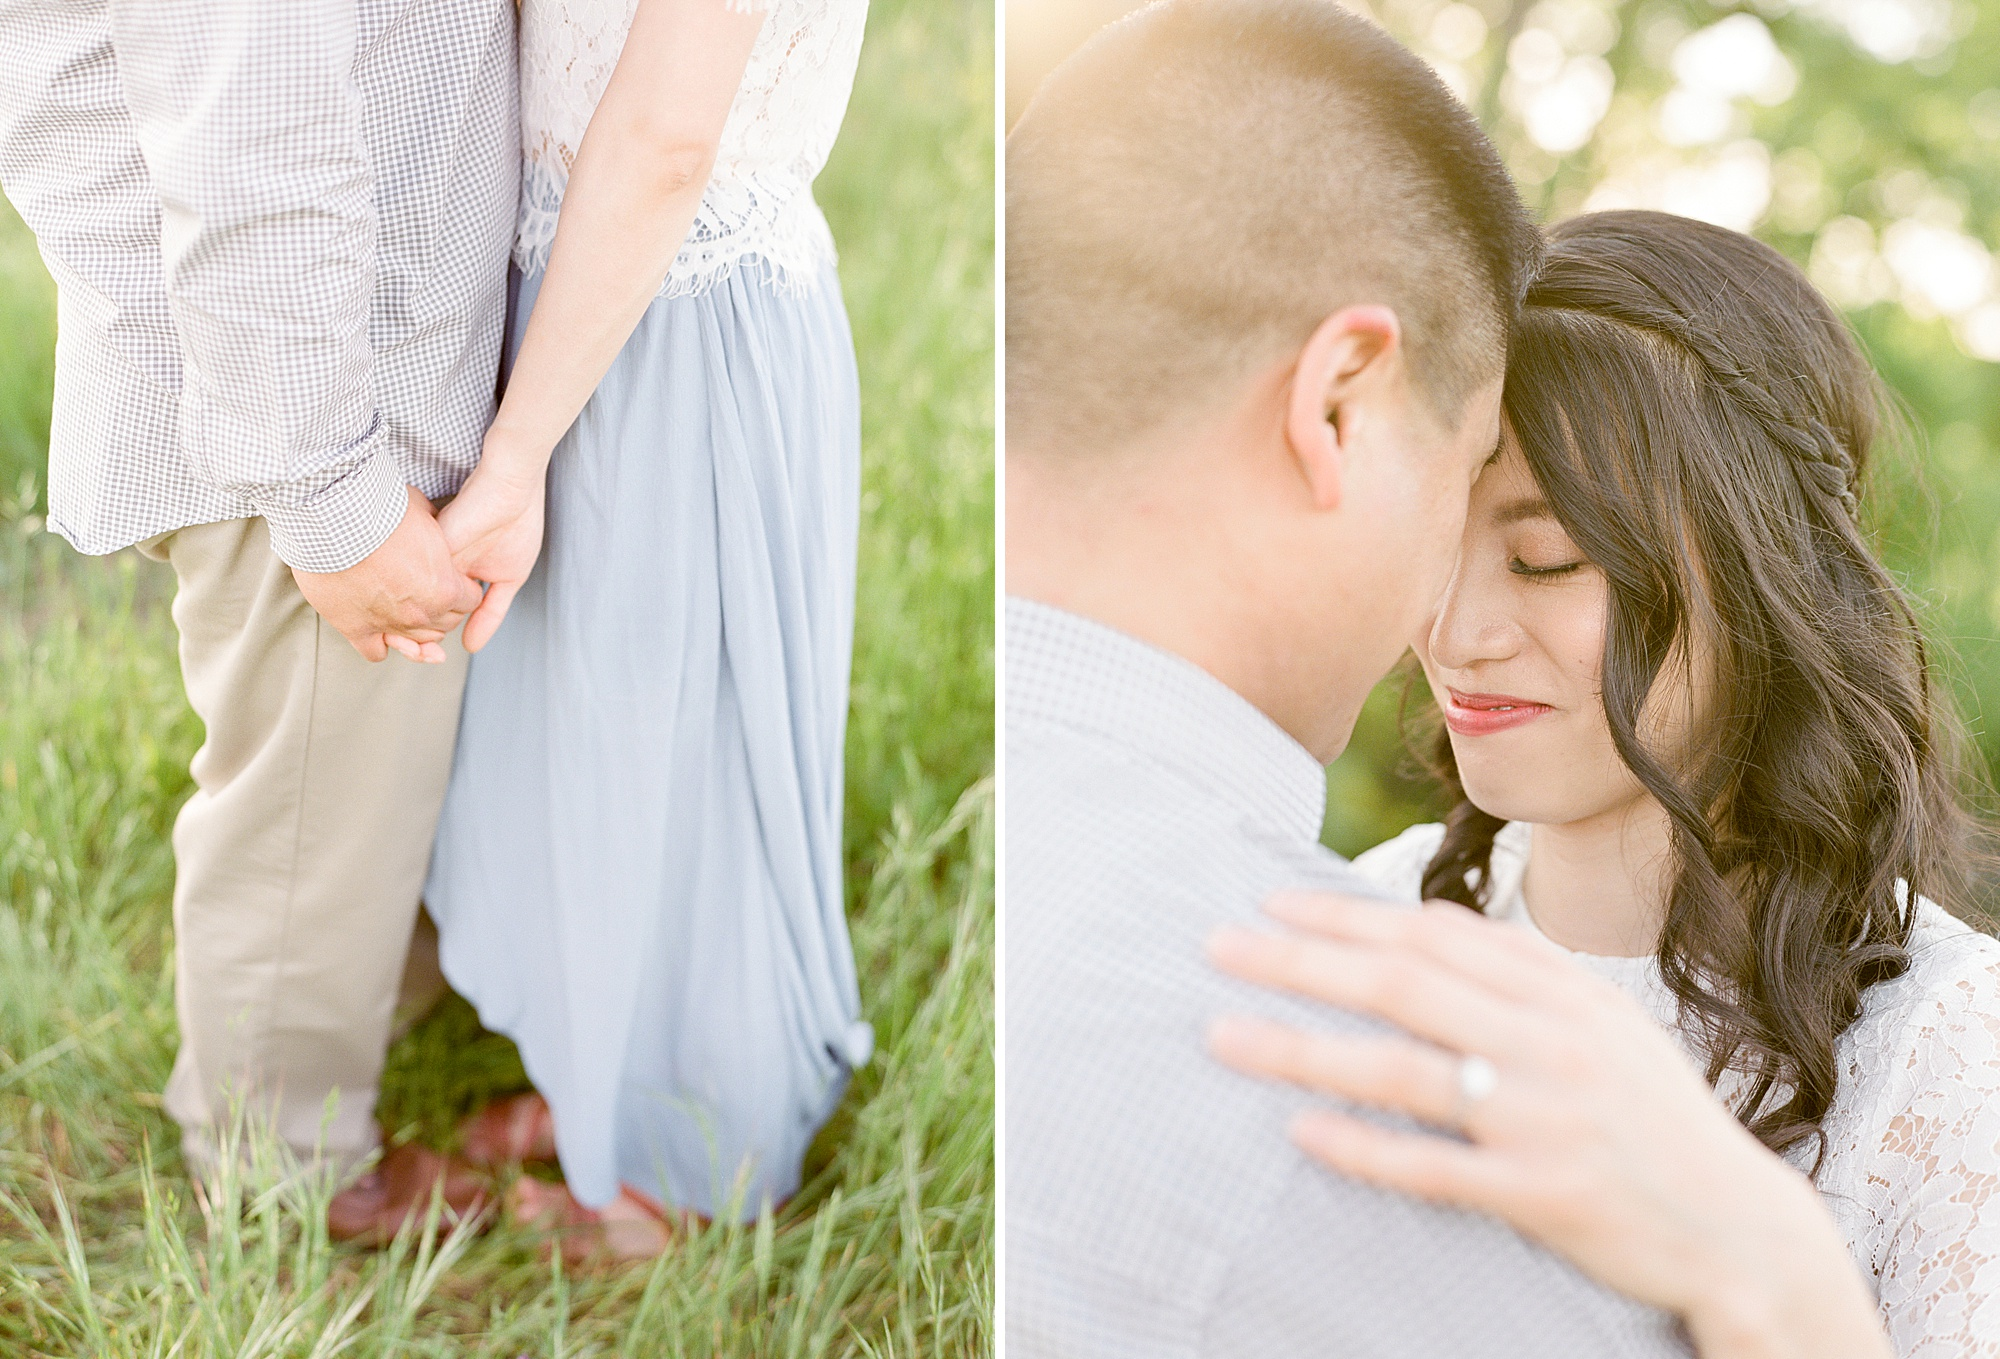 El Dorado Hills Engagement Session - Wendy and Danny - Ashley Baumgartner - Sacramento Wedding Photographer and Sacramento Wedding Photography - Bay Area Wedding Photographer_0006.jpg